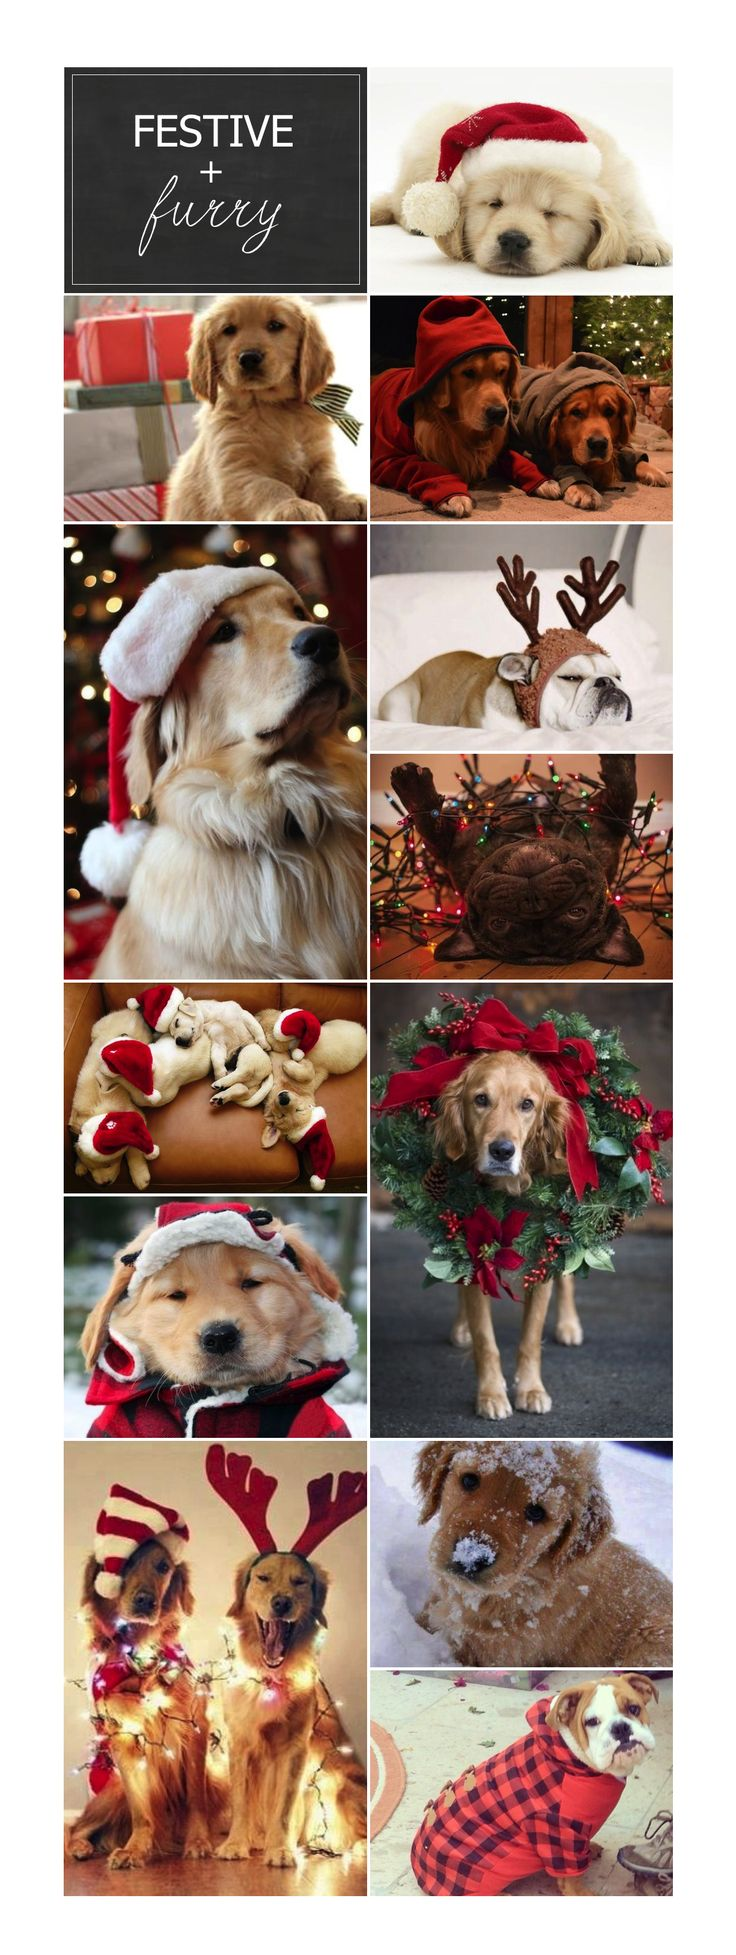 Festive dogs decked out in Christmas gear! My heart just melts to pieces.